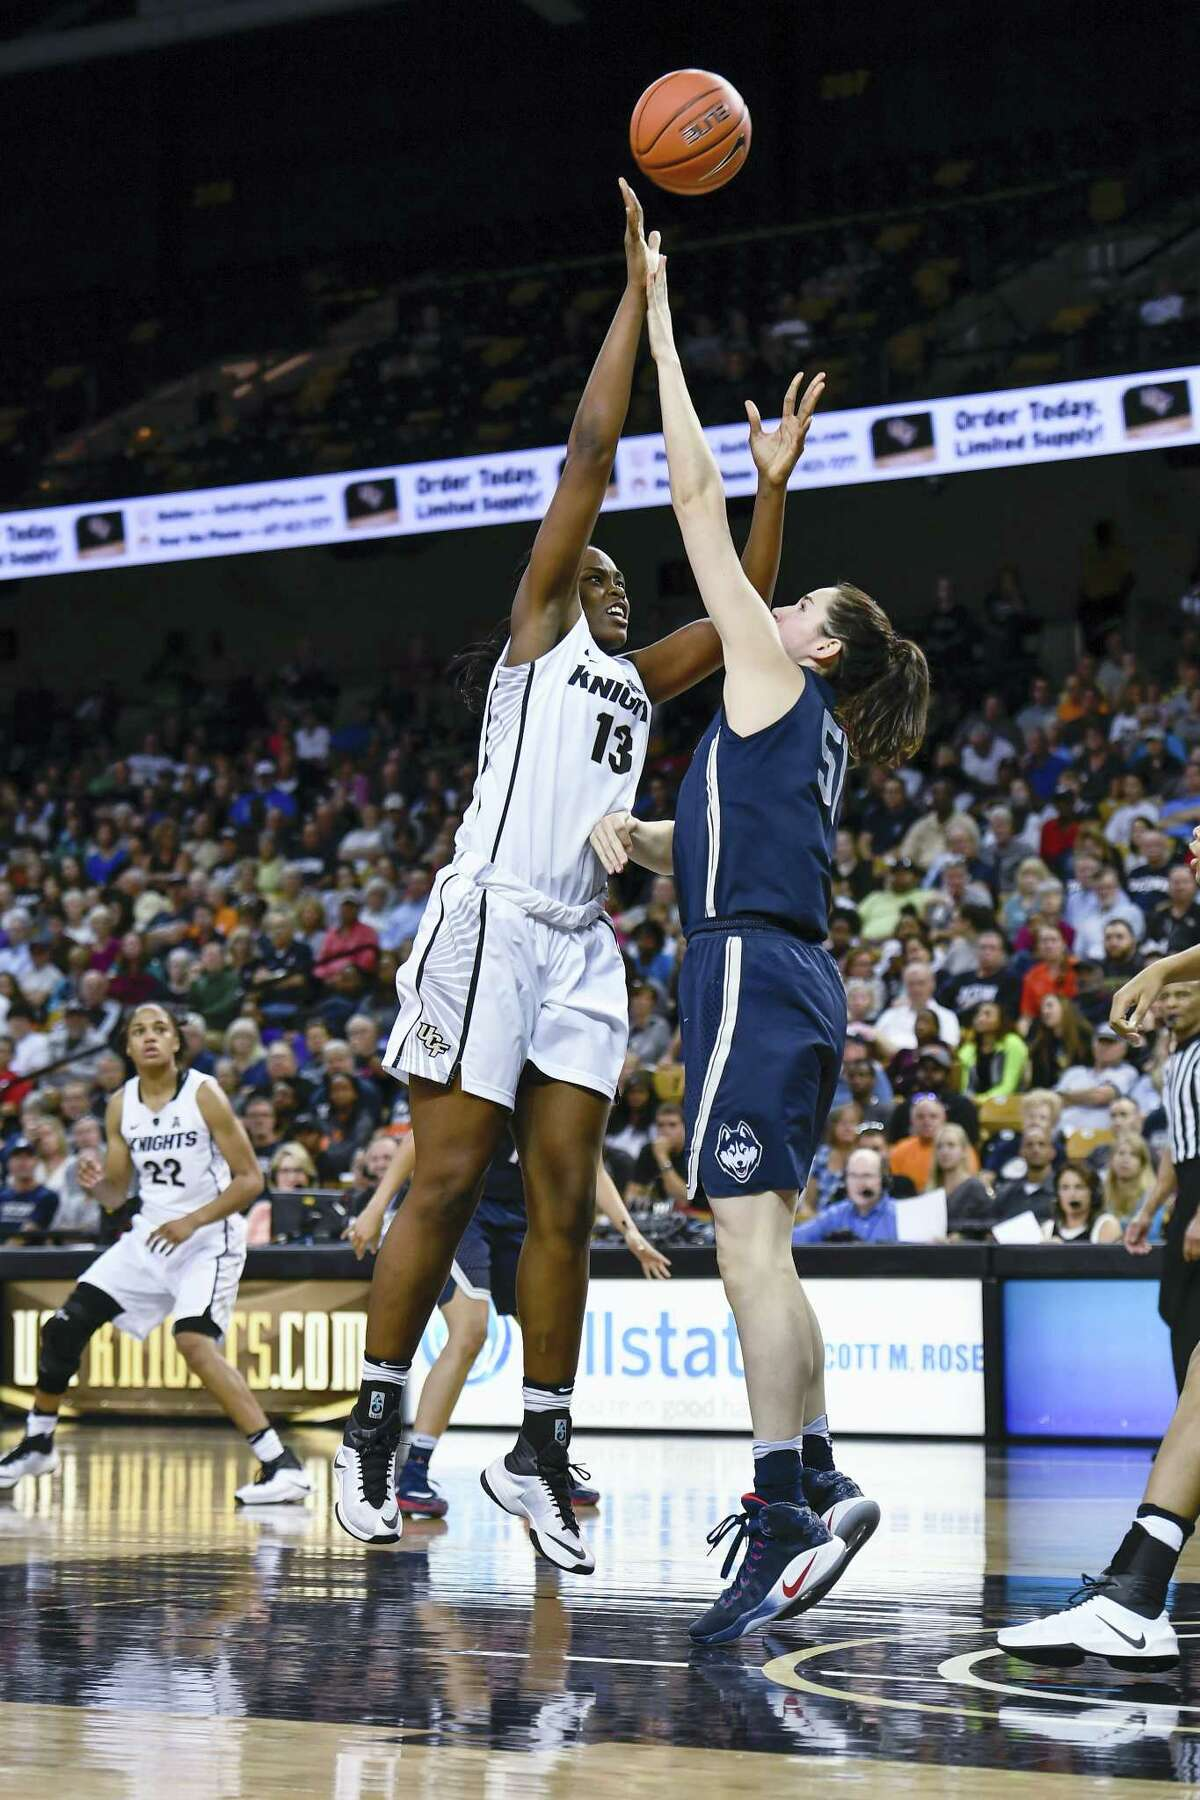 Central Florida center Kayla Thomas shoots over UConn center Natalie Butler during an NCAA college basketball game, Sunday in Orlando, Fla. Butler is averaging 6.4 points and 4.6 rebounds per game for the Huskies.